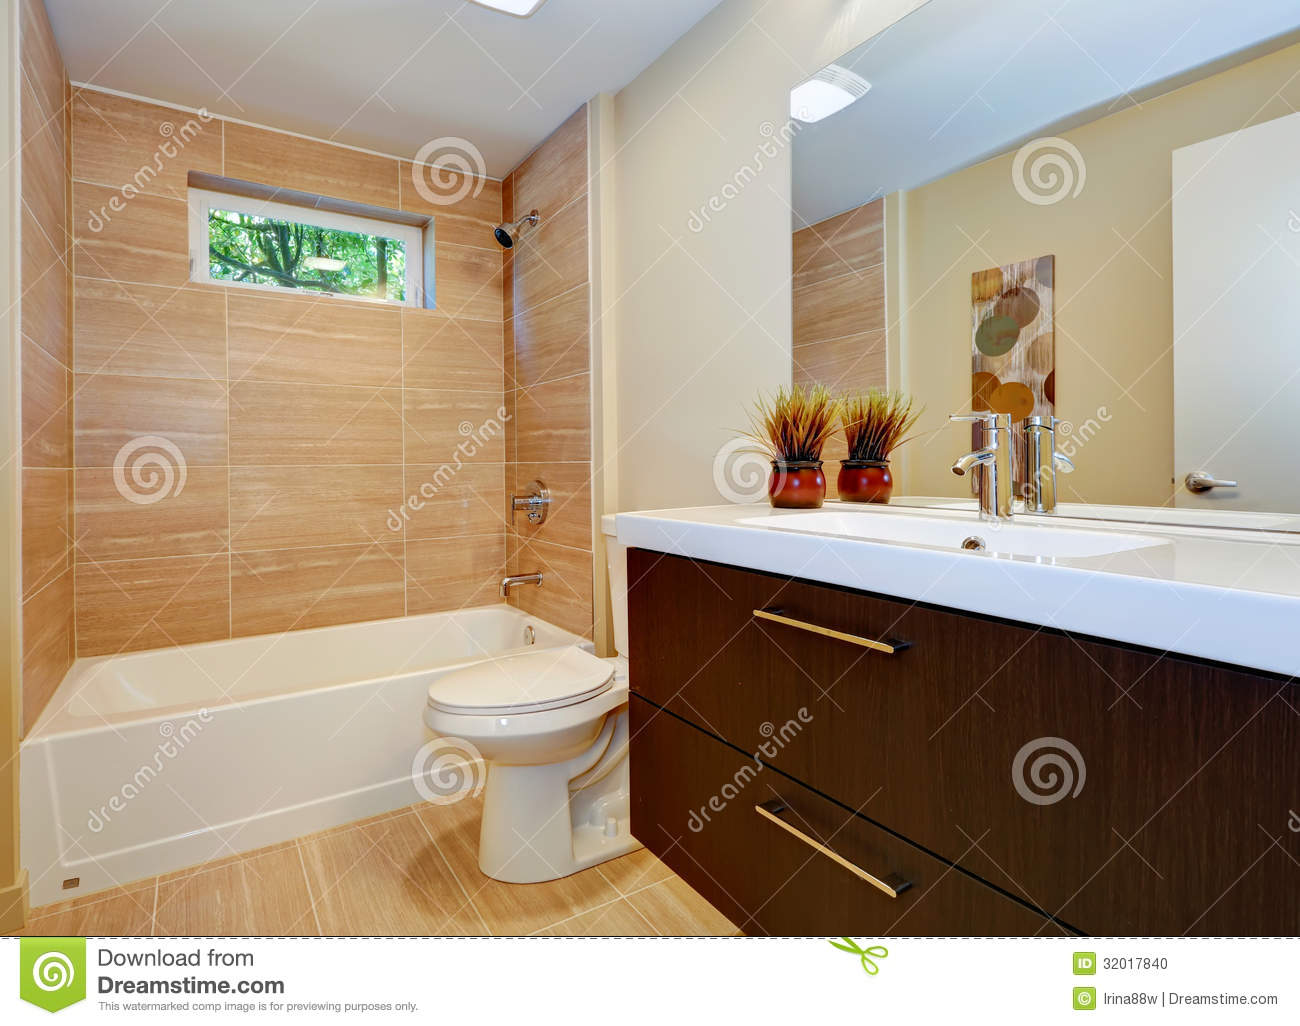 Modern new bathroom design with sink and white tub stock photo image 32017840 New design in bathroom